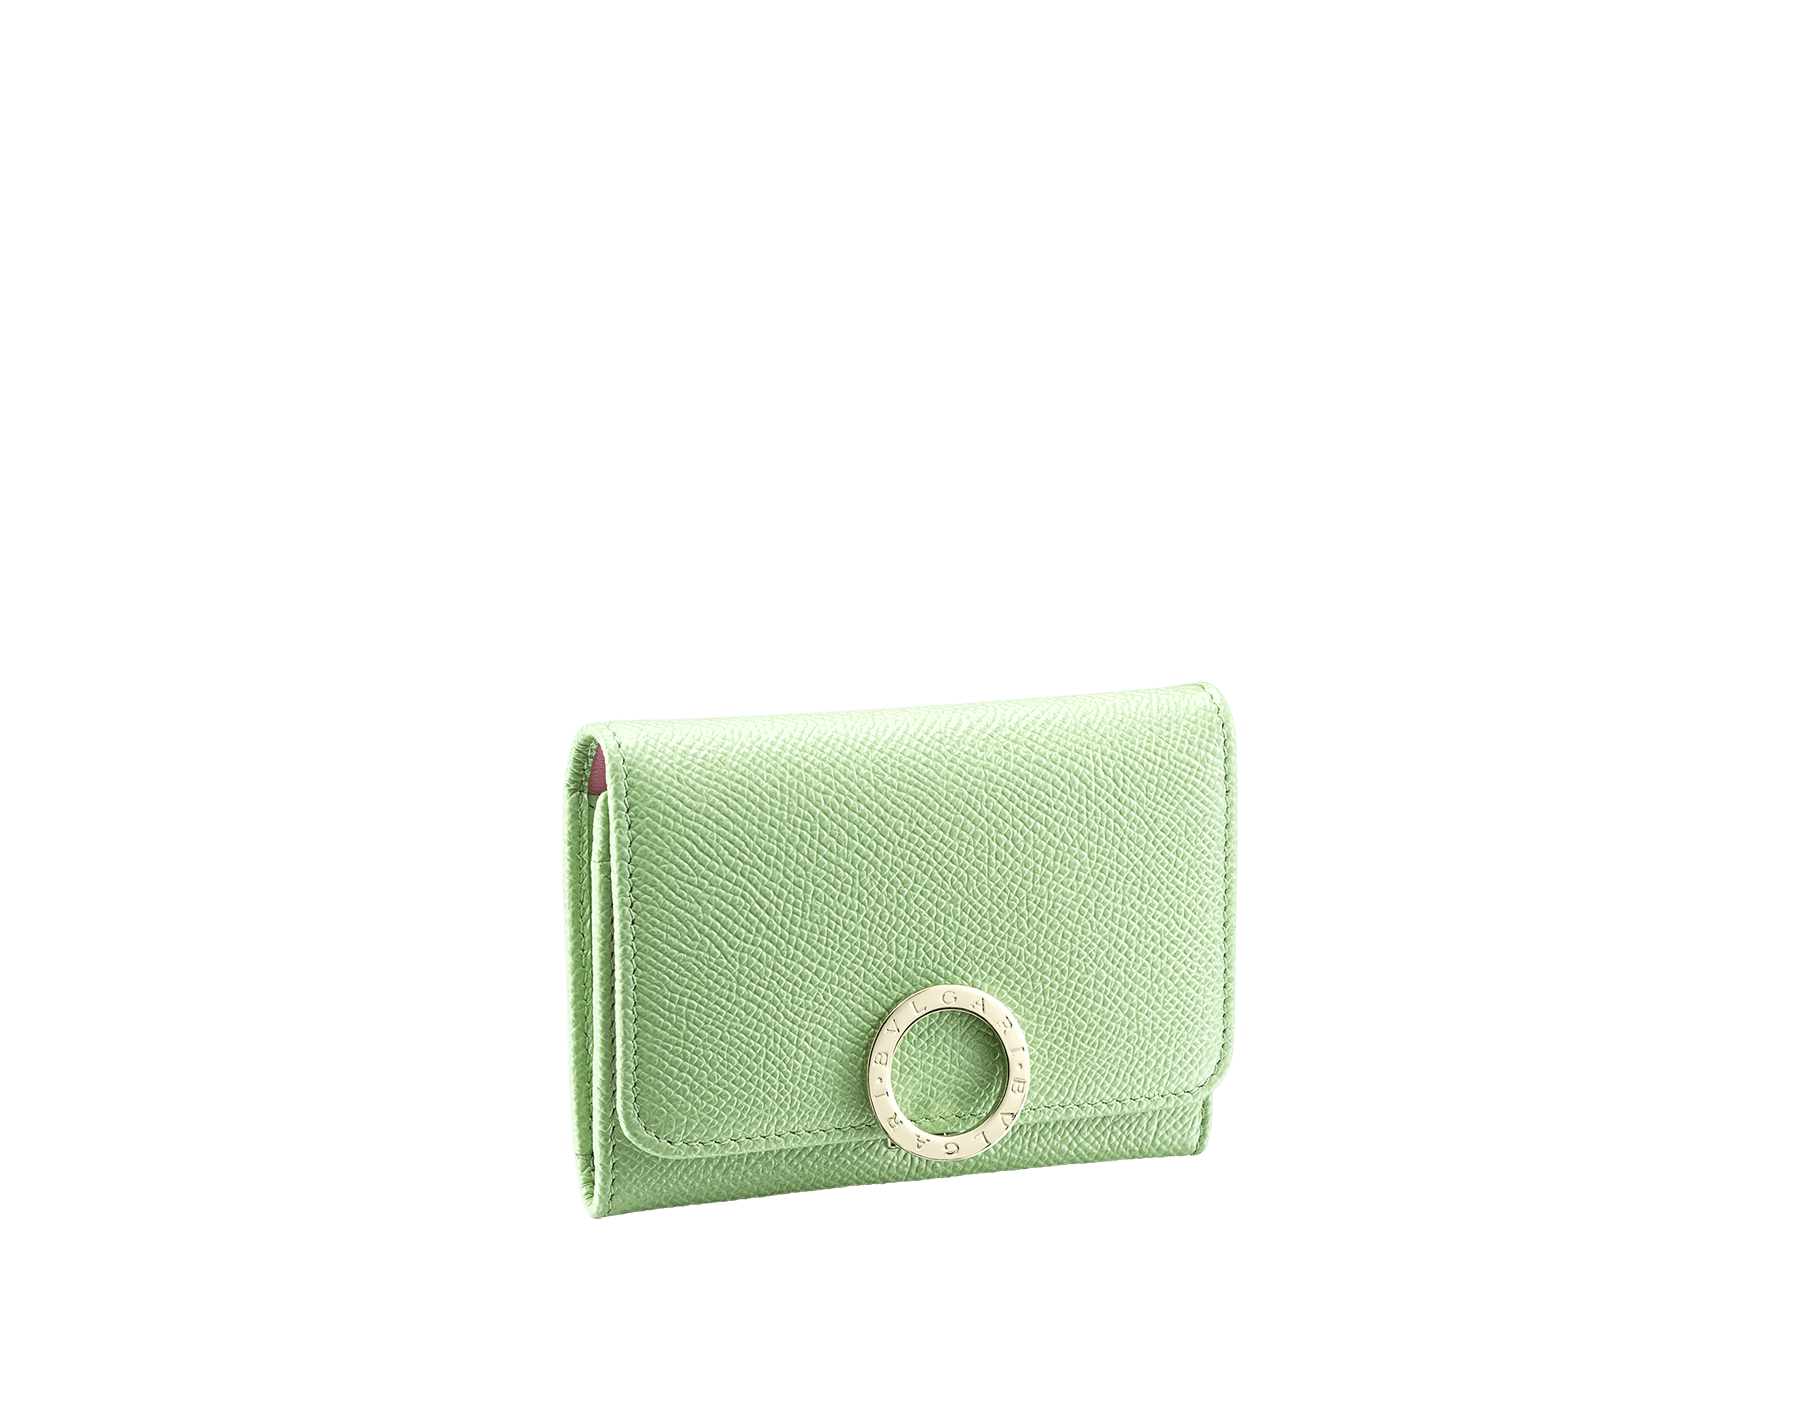 """""""BVLGARI BVLGARI"""" business card holder in mint bright grain calf leather and taffy quartz nappa leather. Iconic logo clip closure in light gold plated brass. 579-BC-HOLDER-BGCLc image 1"""